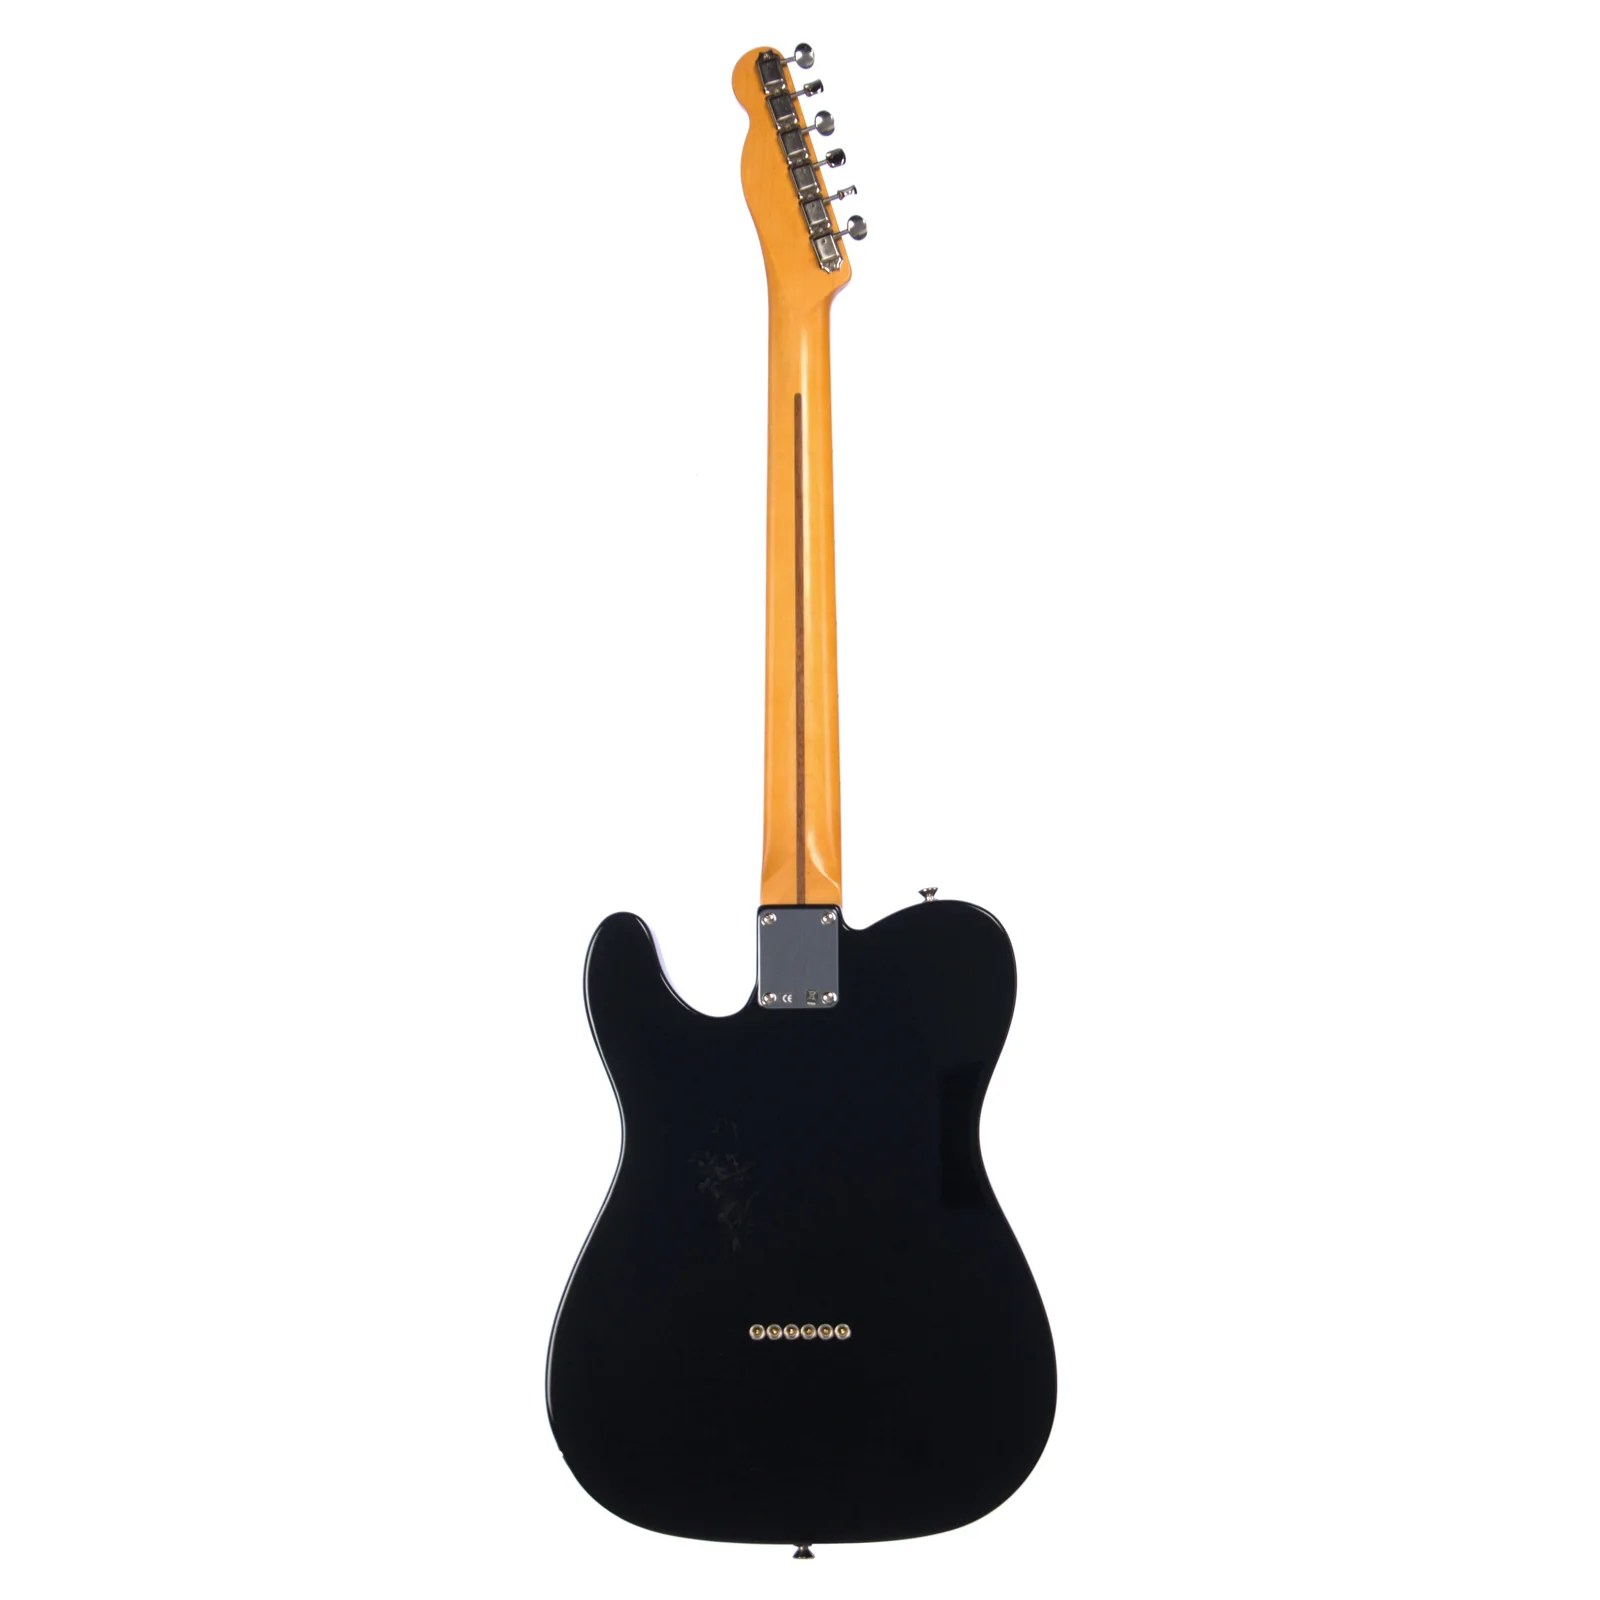 medium resolution of used fender vintage hot rod 52 telecaster black electric guitar made in